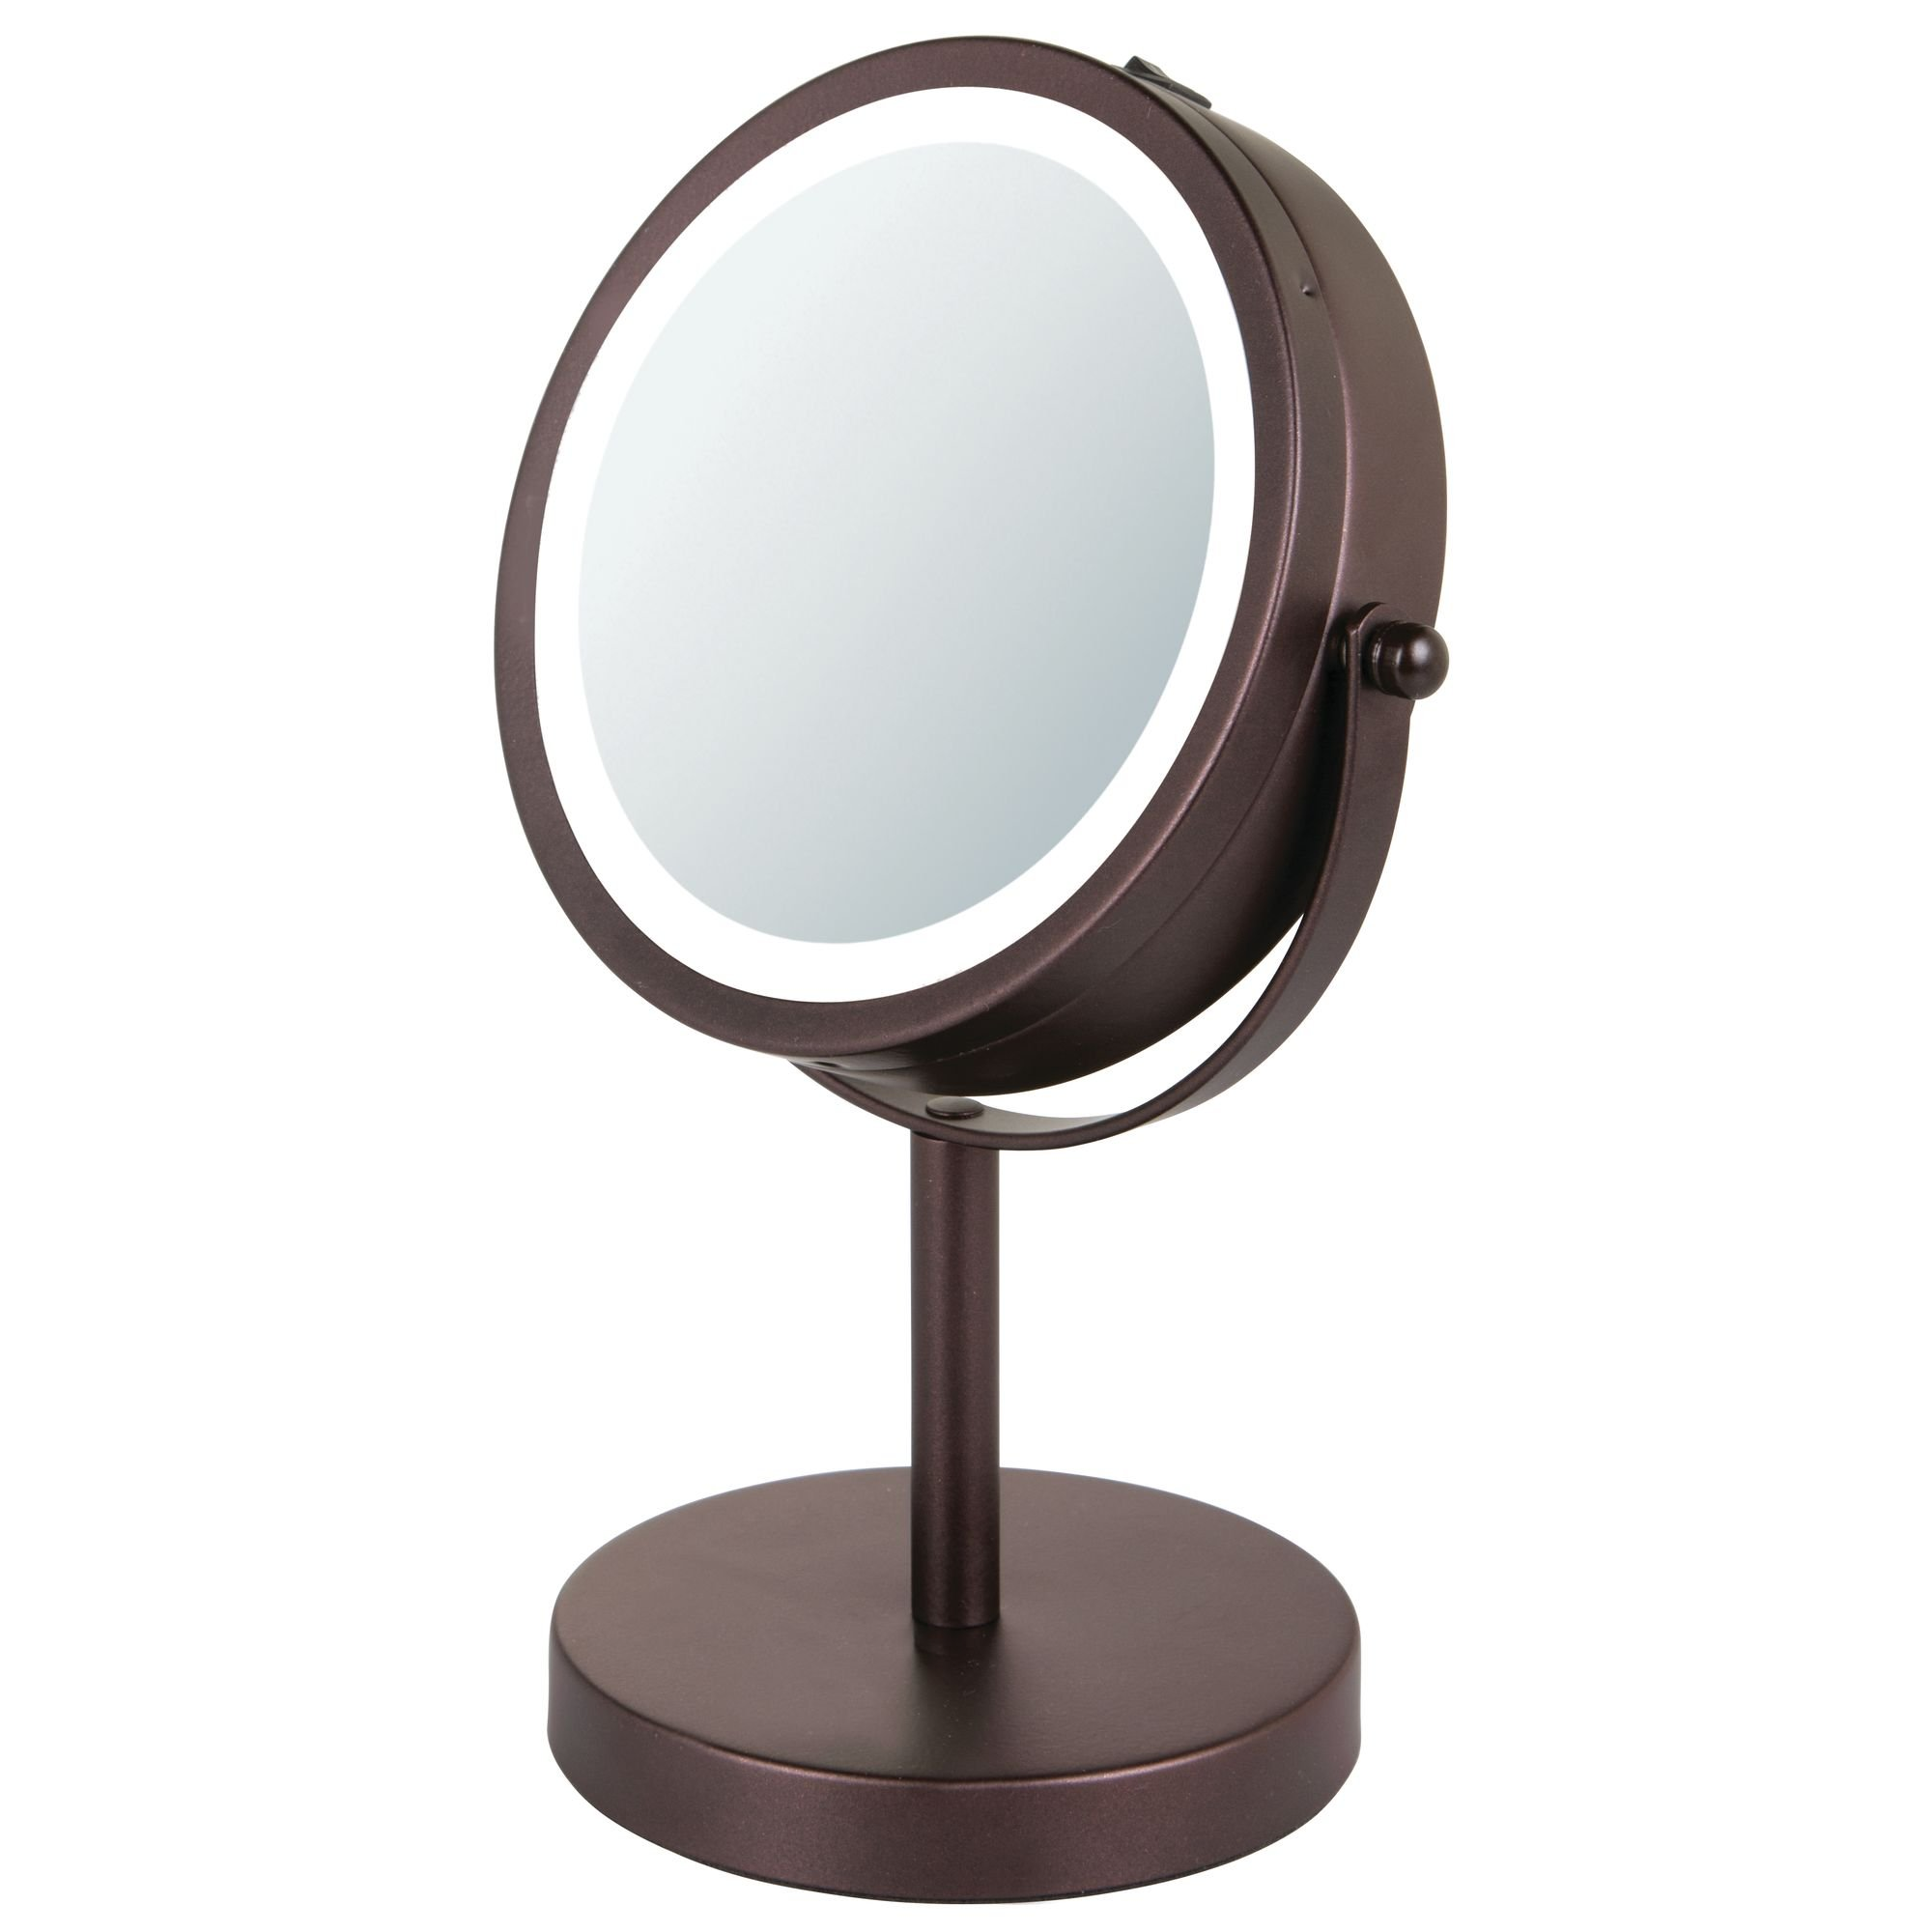 mDesign 10-Inch Free-Standing Portable Double-Sided Vanity Mirror with Lighting for Bathroom – Bronze